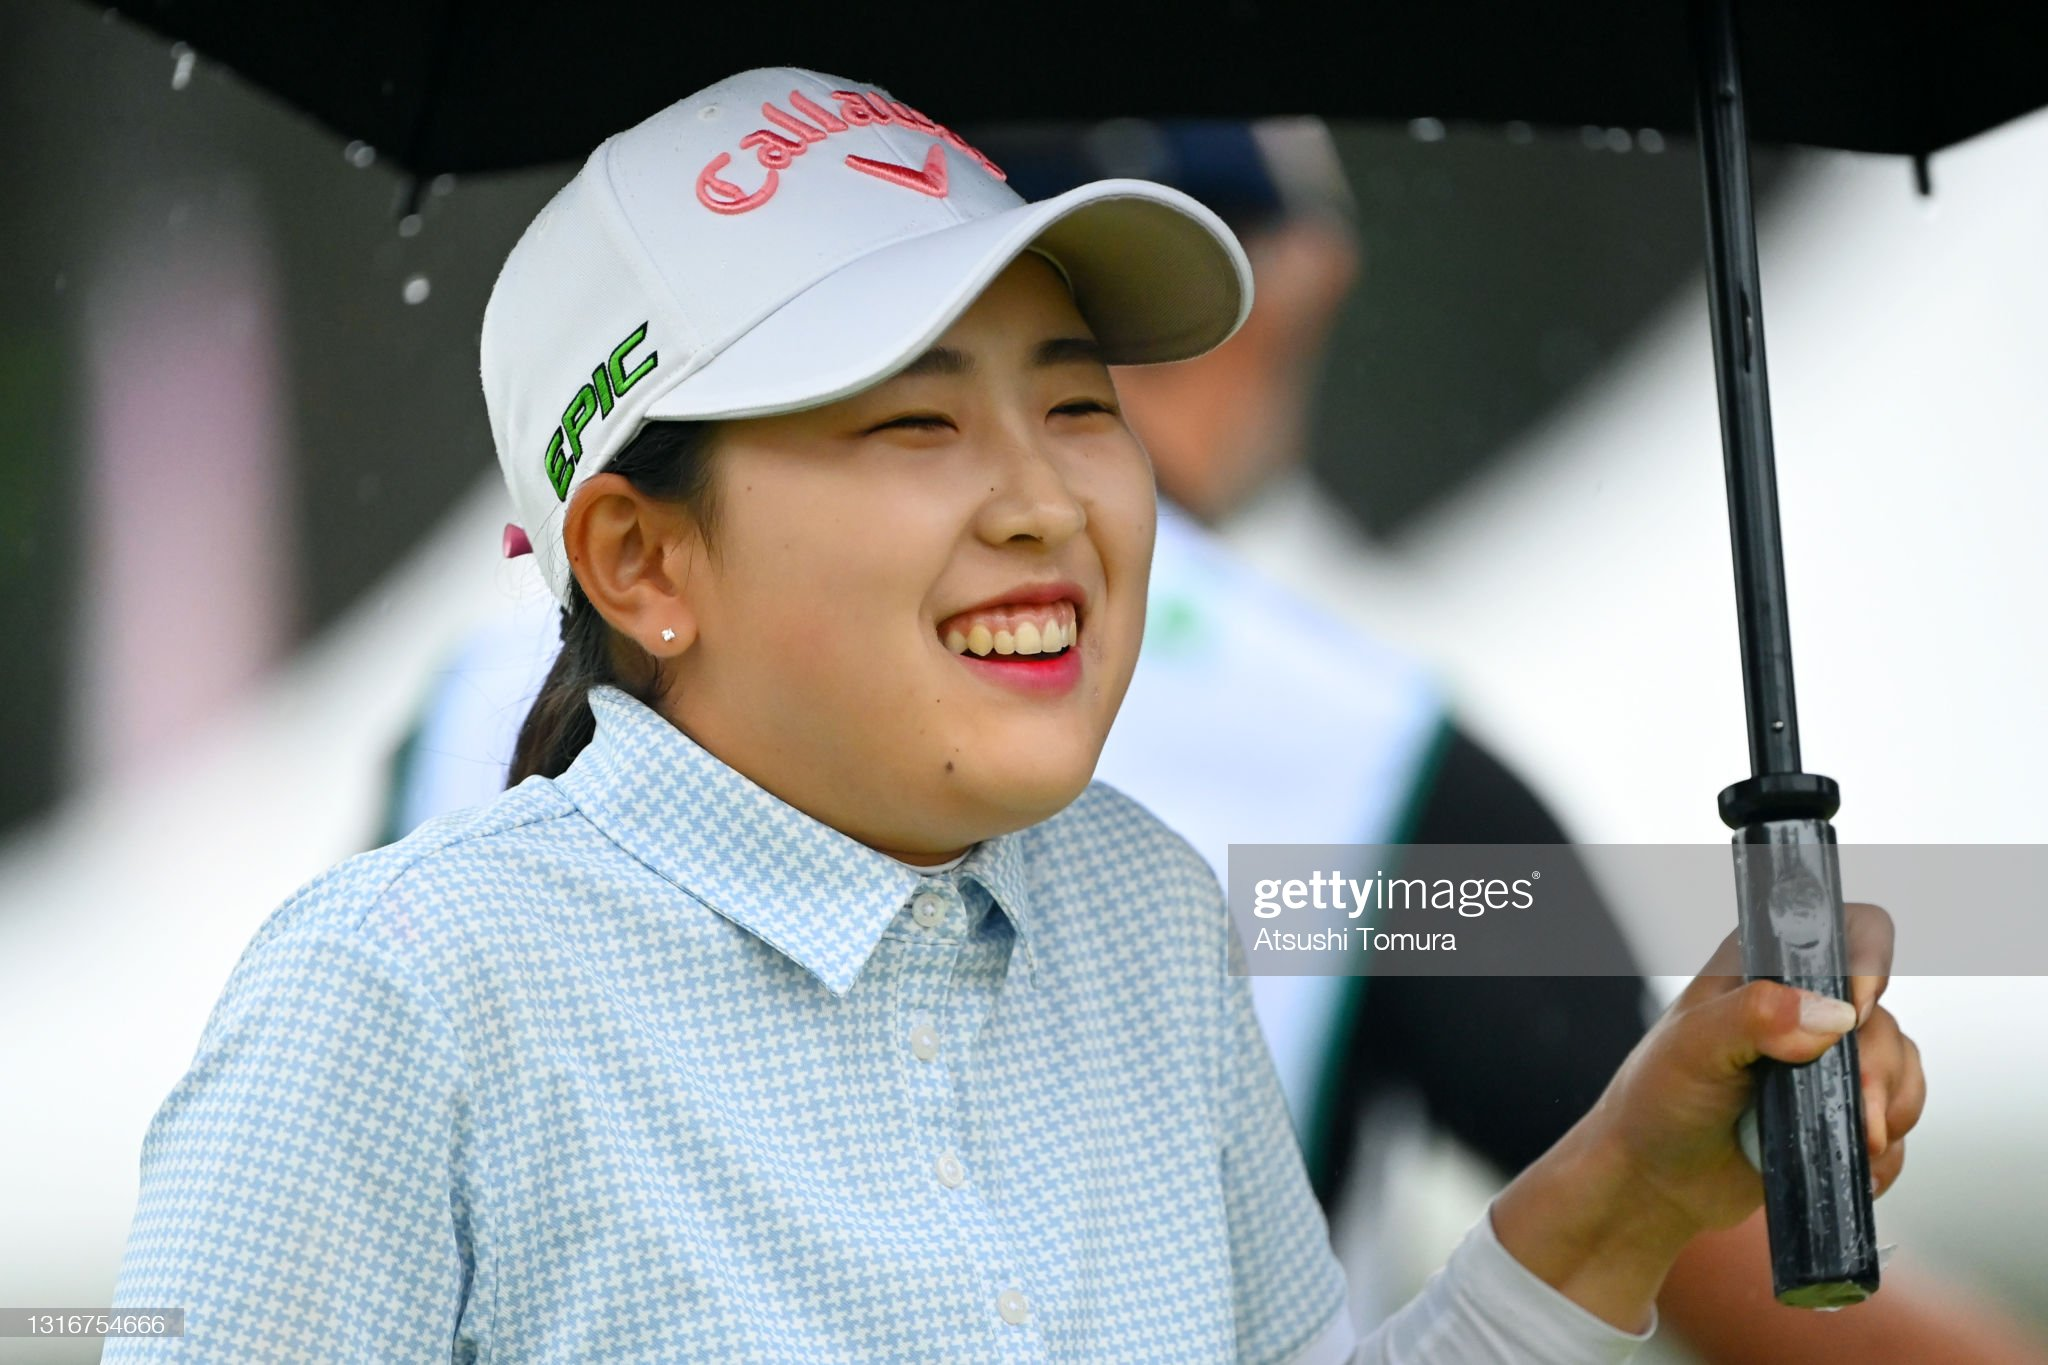 https://media.gettyimages.com/photos/hana-lee-of-south-korea-reacts-after-holing-out-during-the-second-of-picture-id1316754666?s=2048x2048